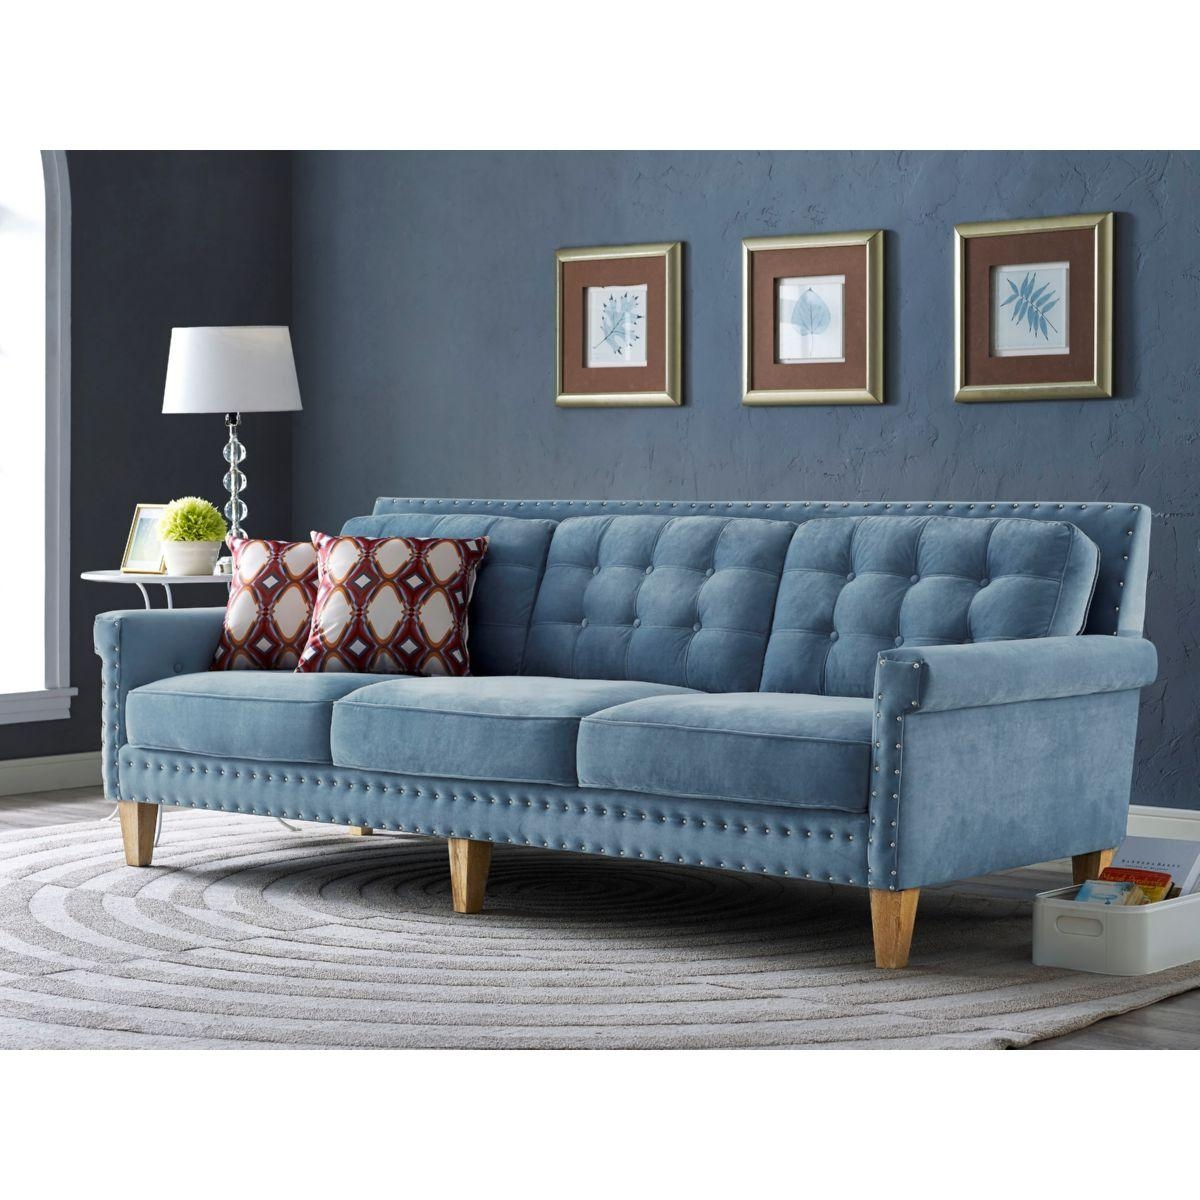 Tov Furniture Tov S75 Jonathan Tufted Blue Velvet Sofa W/ Silver For Blue Tufted Sofas (Image 18 of 22)